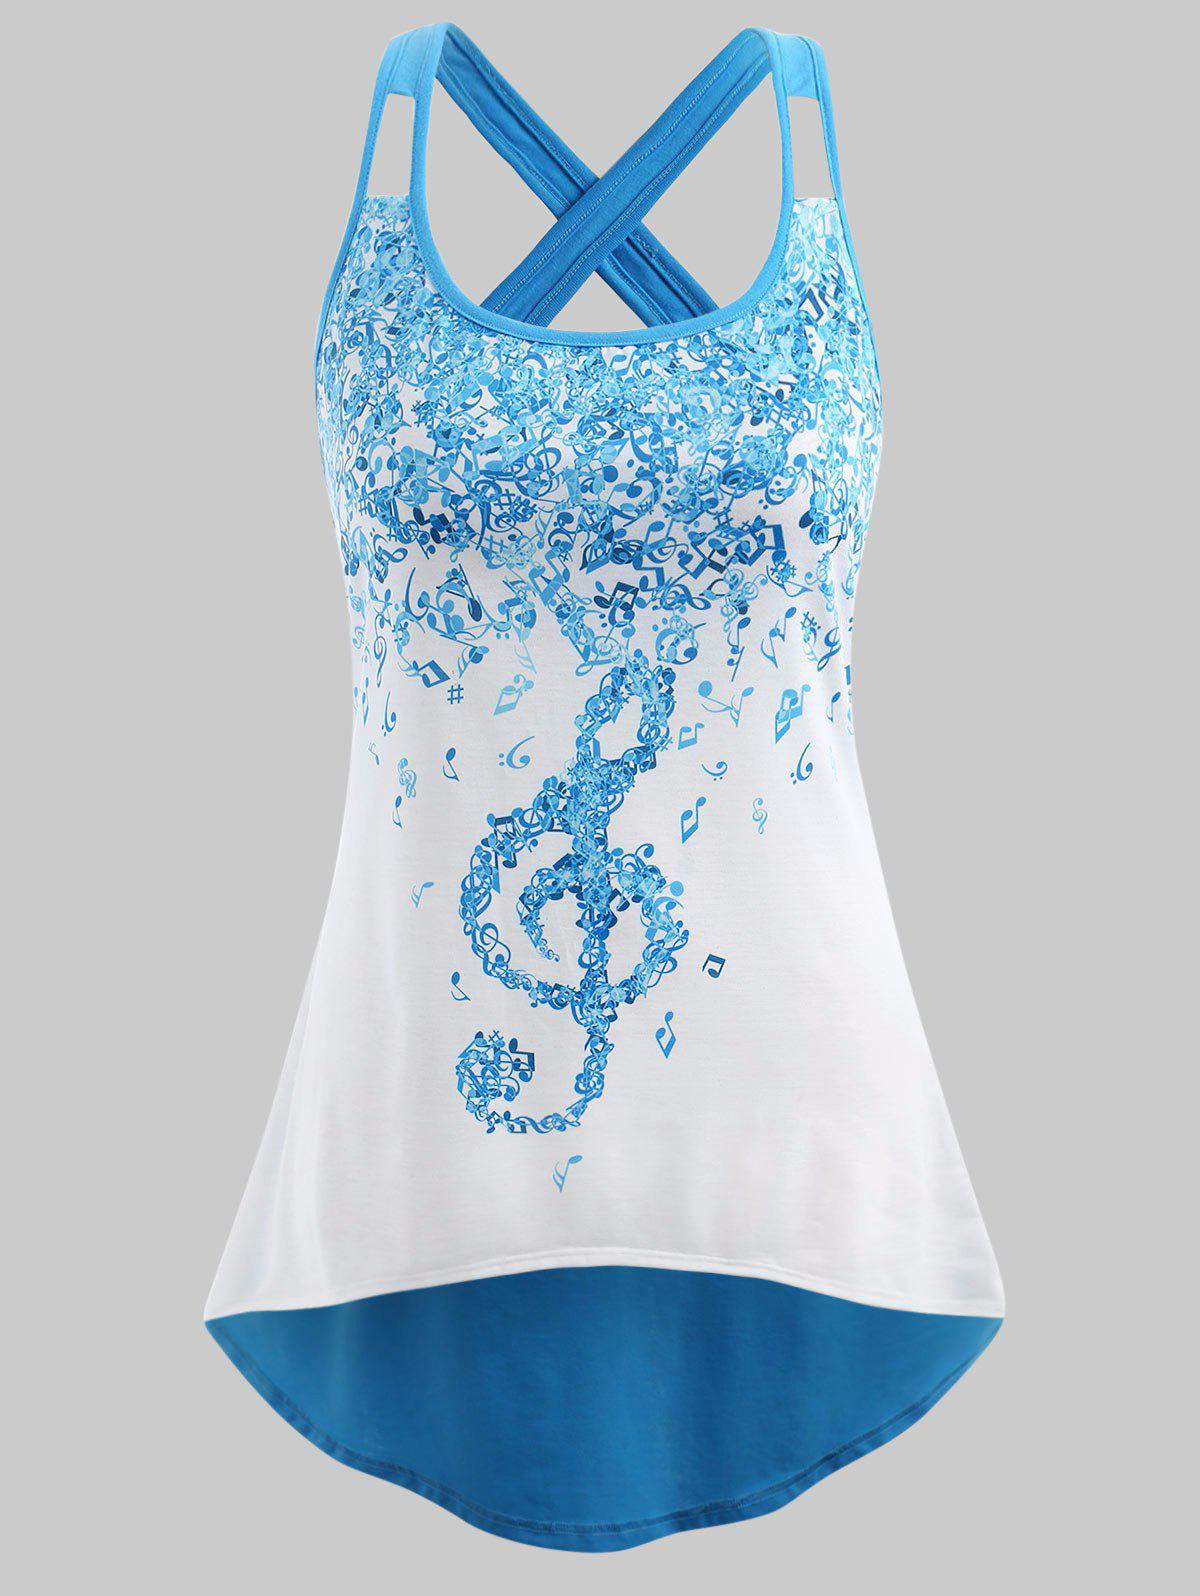 Plus Size Musical Notes Criss Cross Tank Top acana acana wild pacifica dog all breeds wild caught fish для собак всех пород и возрастов на основе рыбы 2 кг